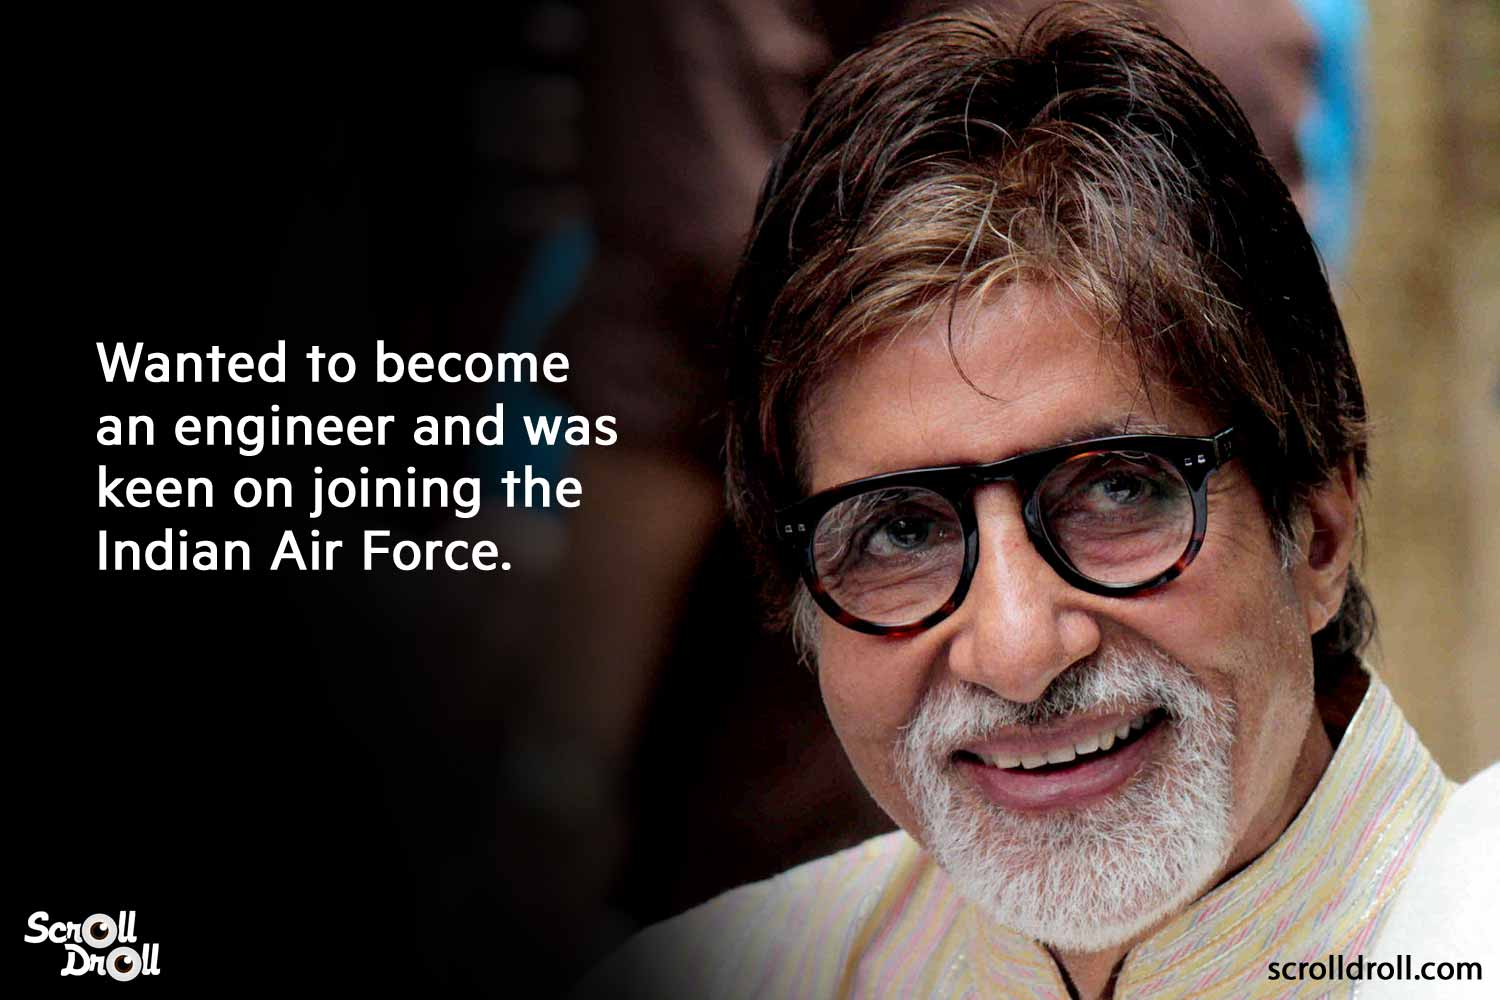 wanted to become an engineer and was keen on joining the indian airforce-amitabh bachchan facts